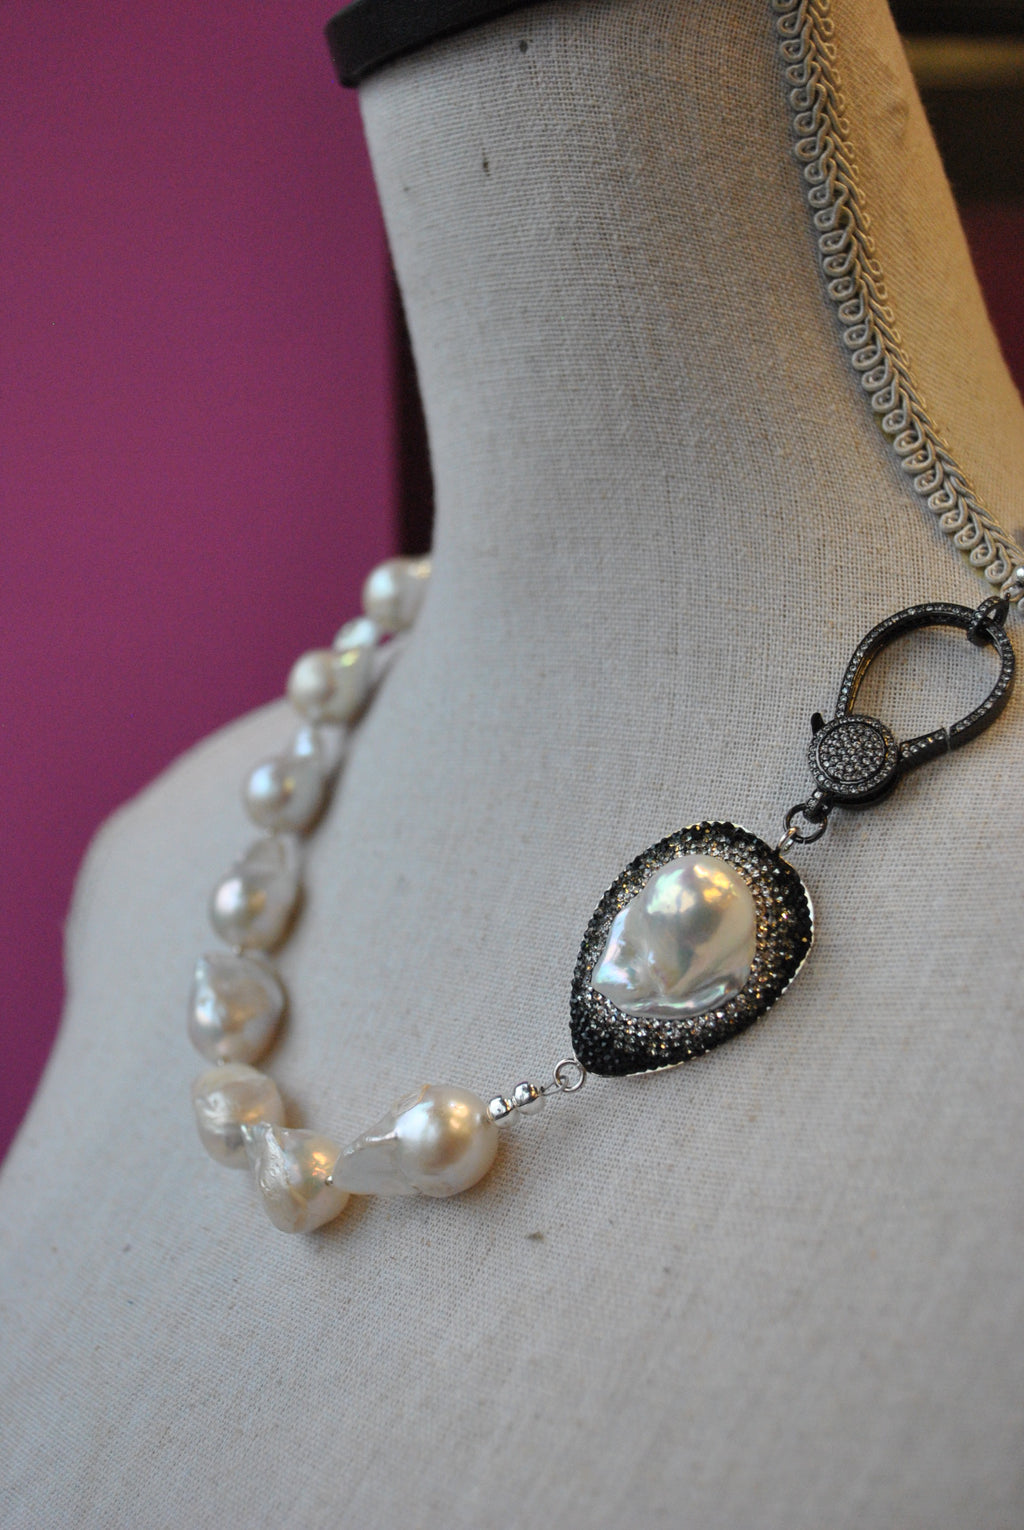 JUMBO FRESHWATER PEARLS WITH SWAROVSKI CRYSTALS AND RHINESTONES CLASP ASYMMETRIC NECKLACE